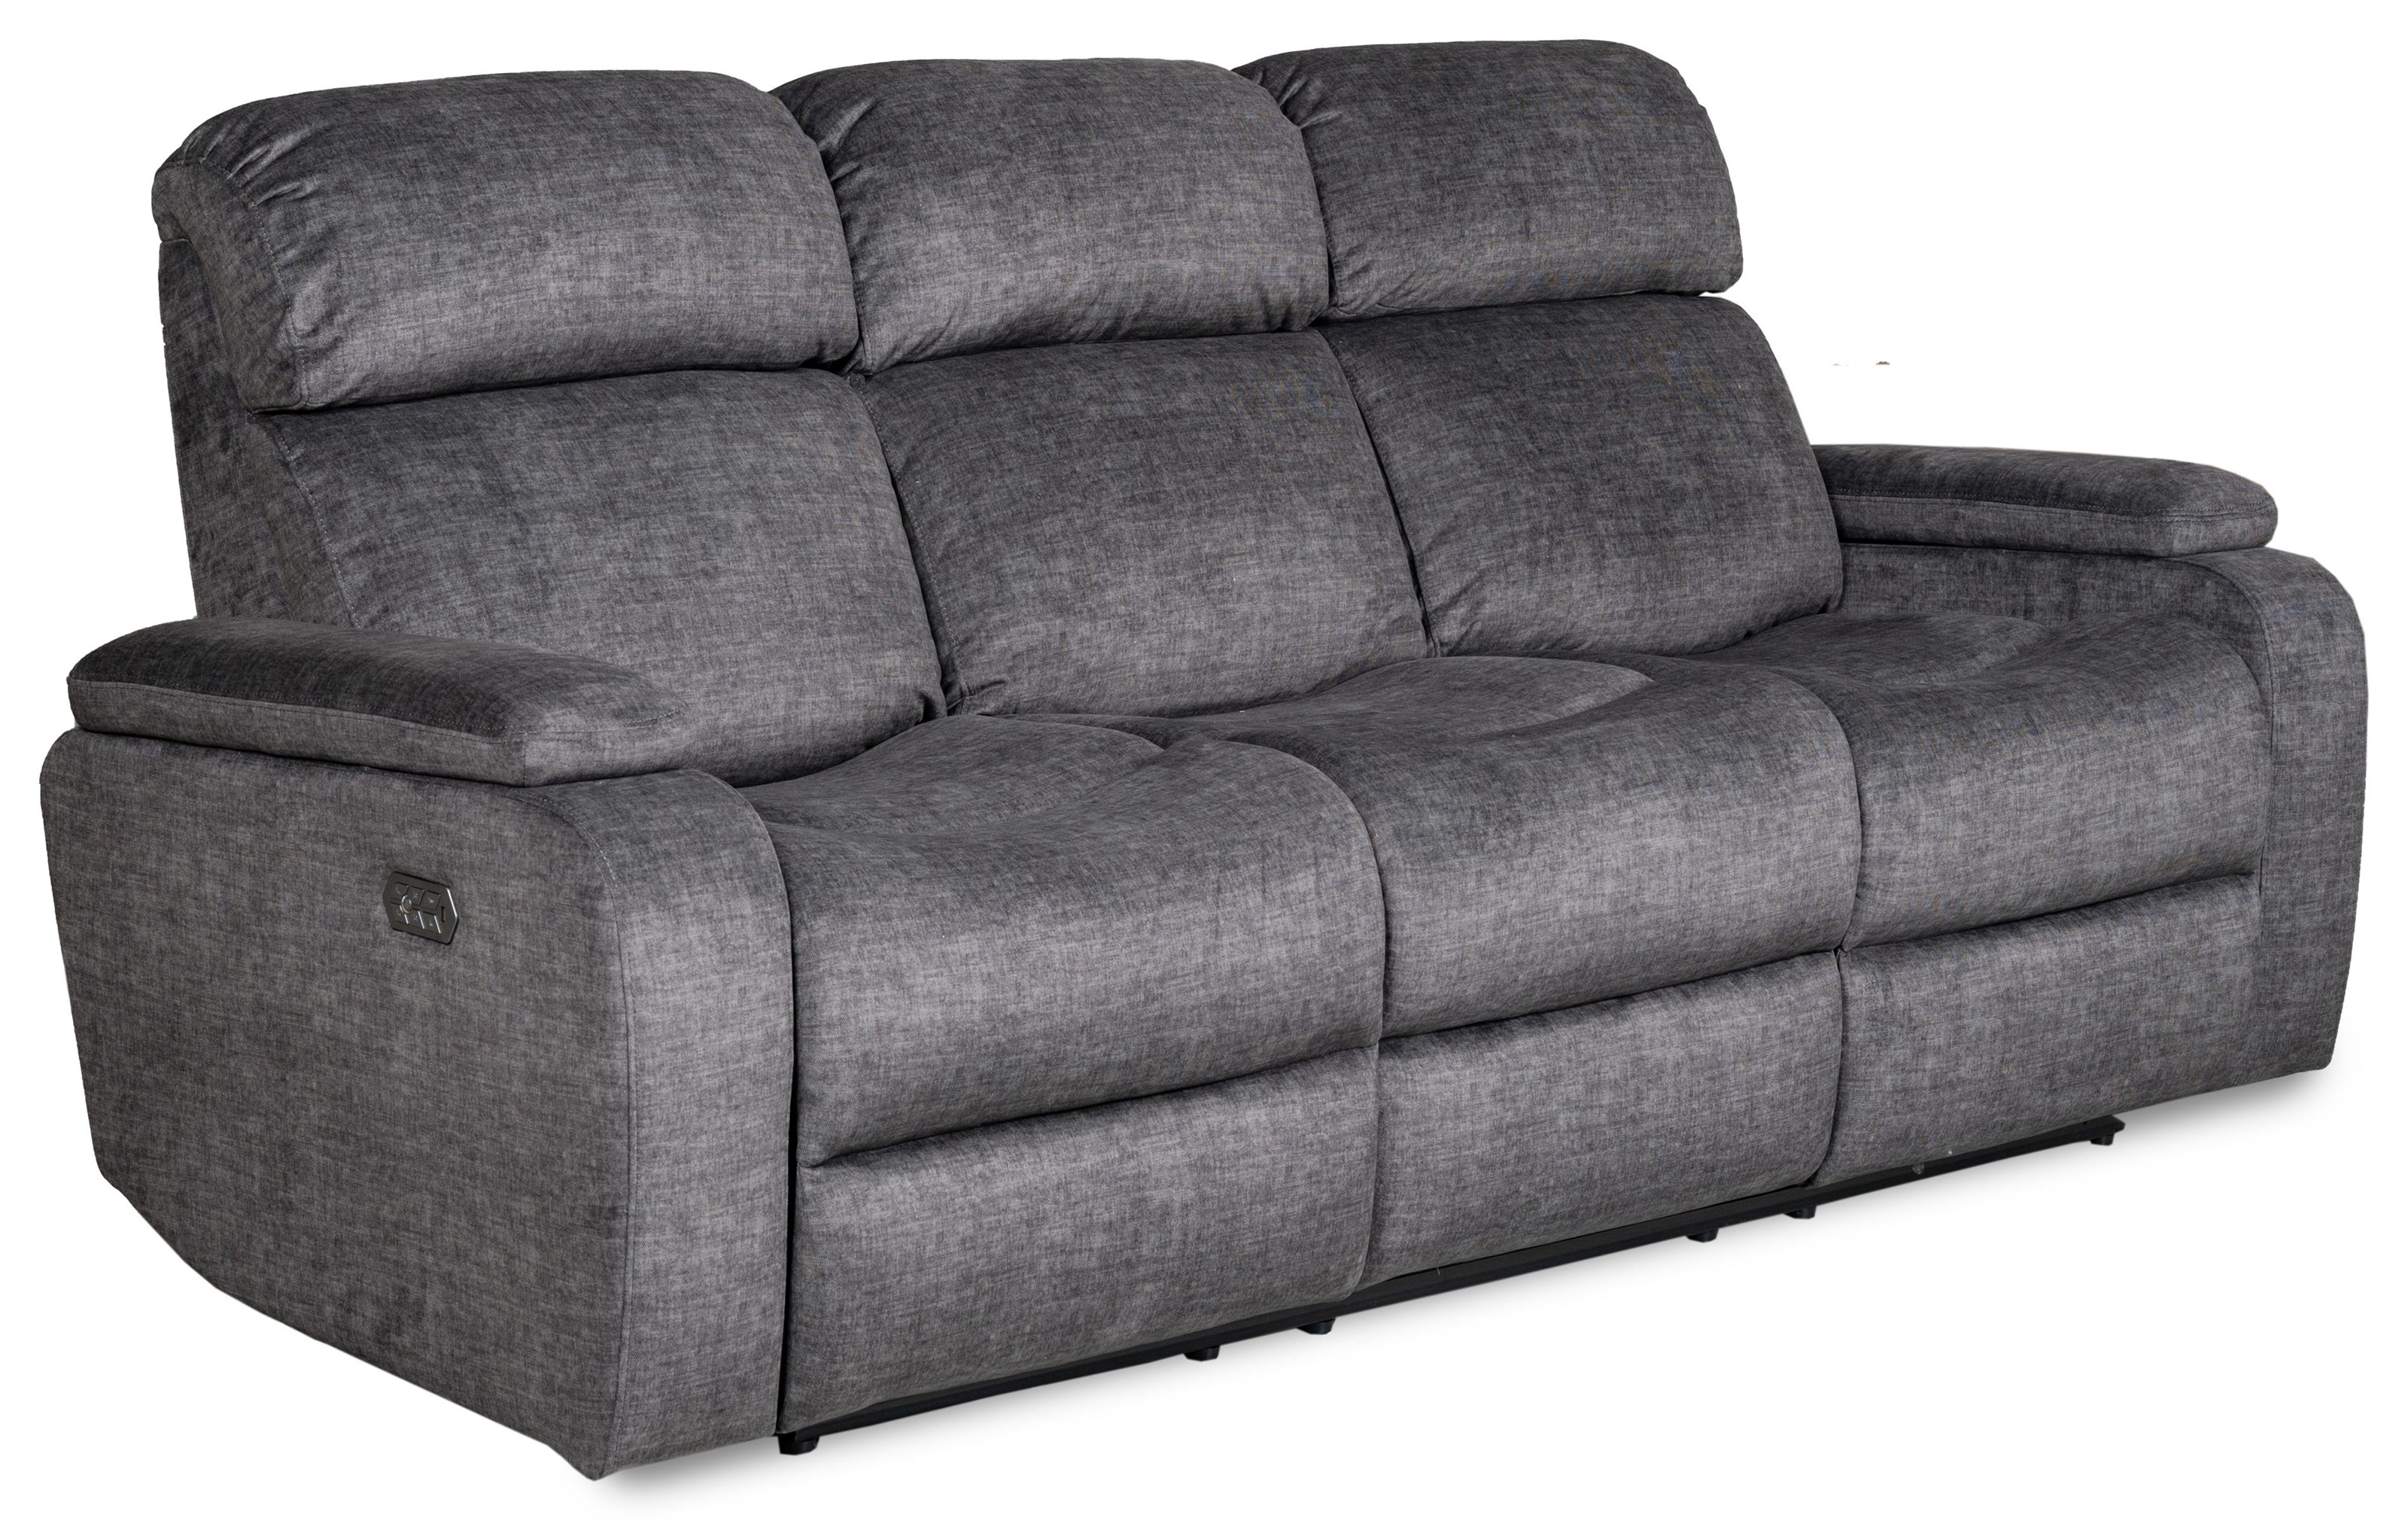 Apex Triple PWR Reclining Sofa w/ Dropdown iTable by Zeal at Walker's Furniture